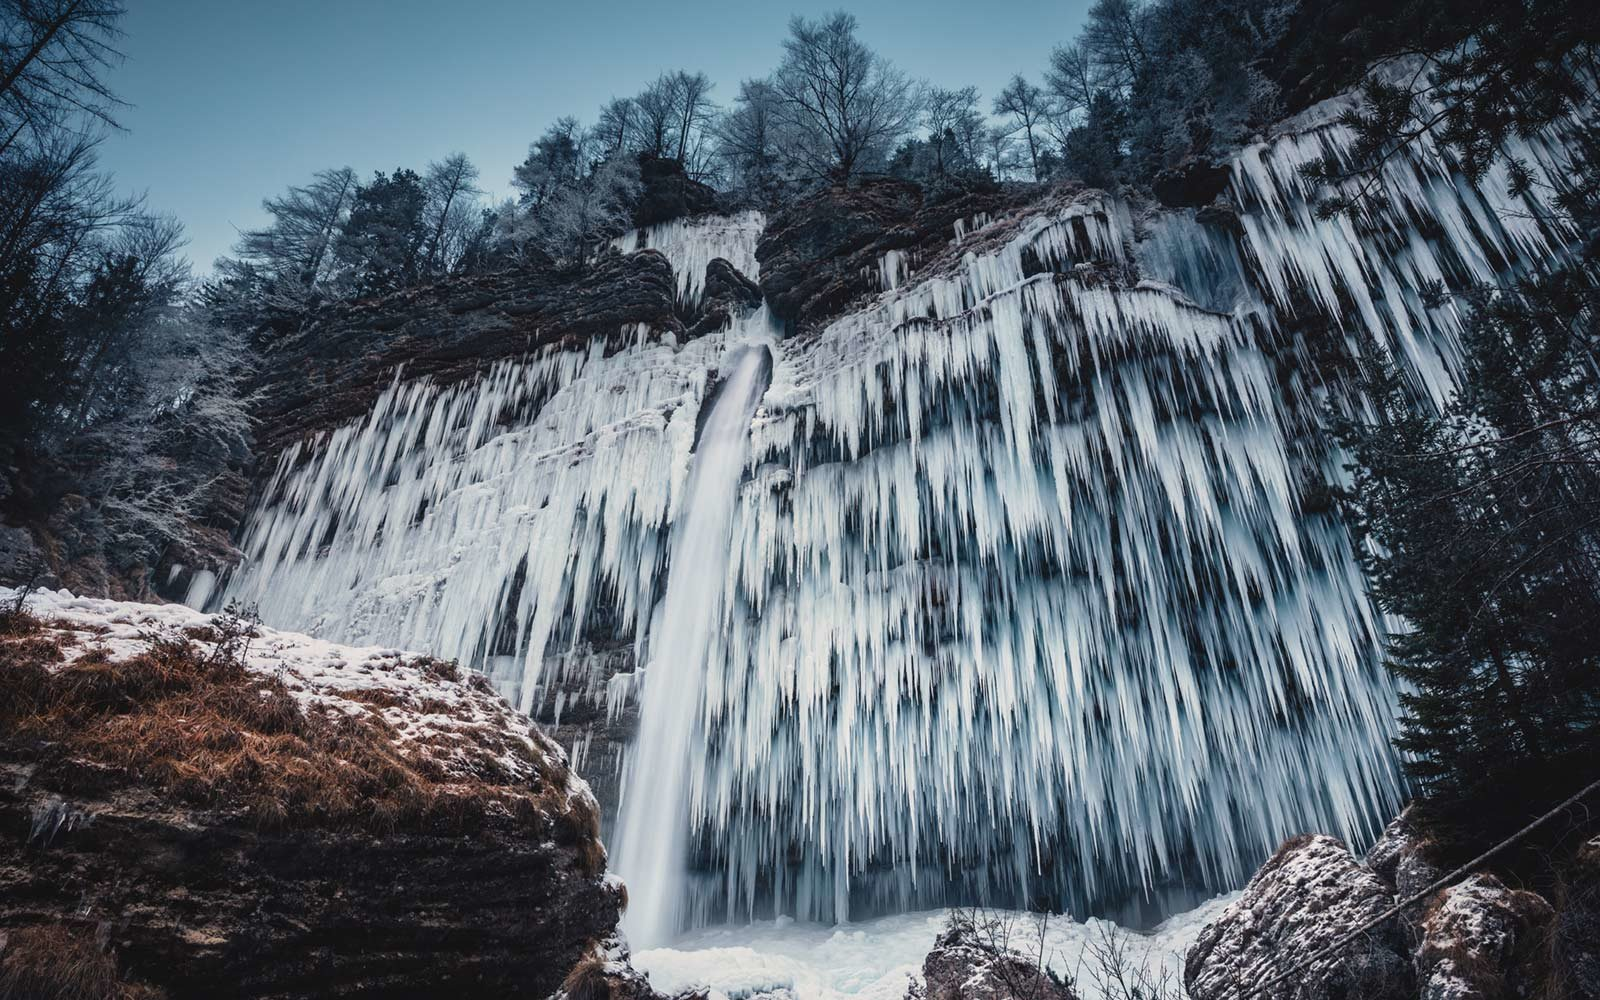 Sharp Icicles, Pericnik Waterfall, Slovenia